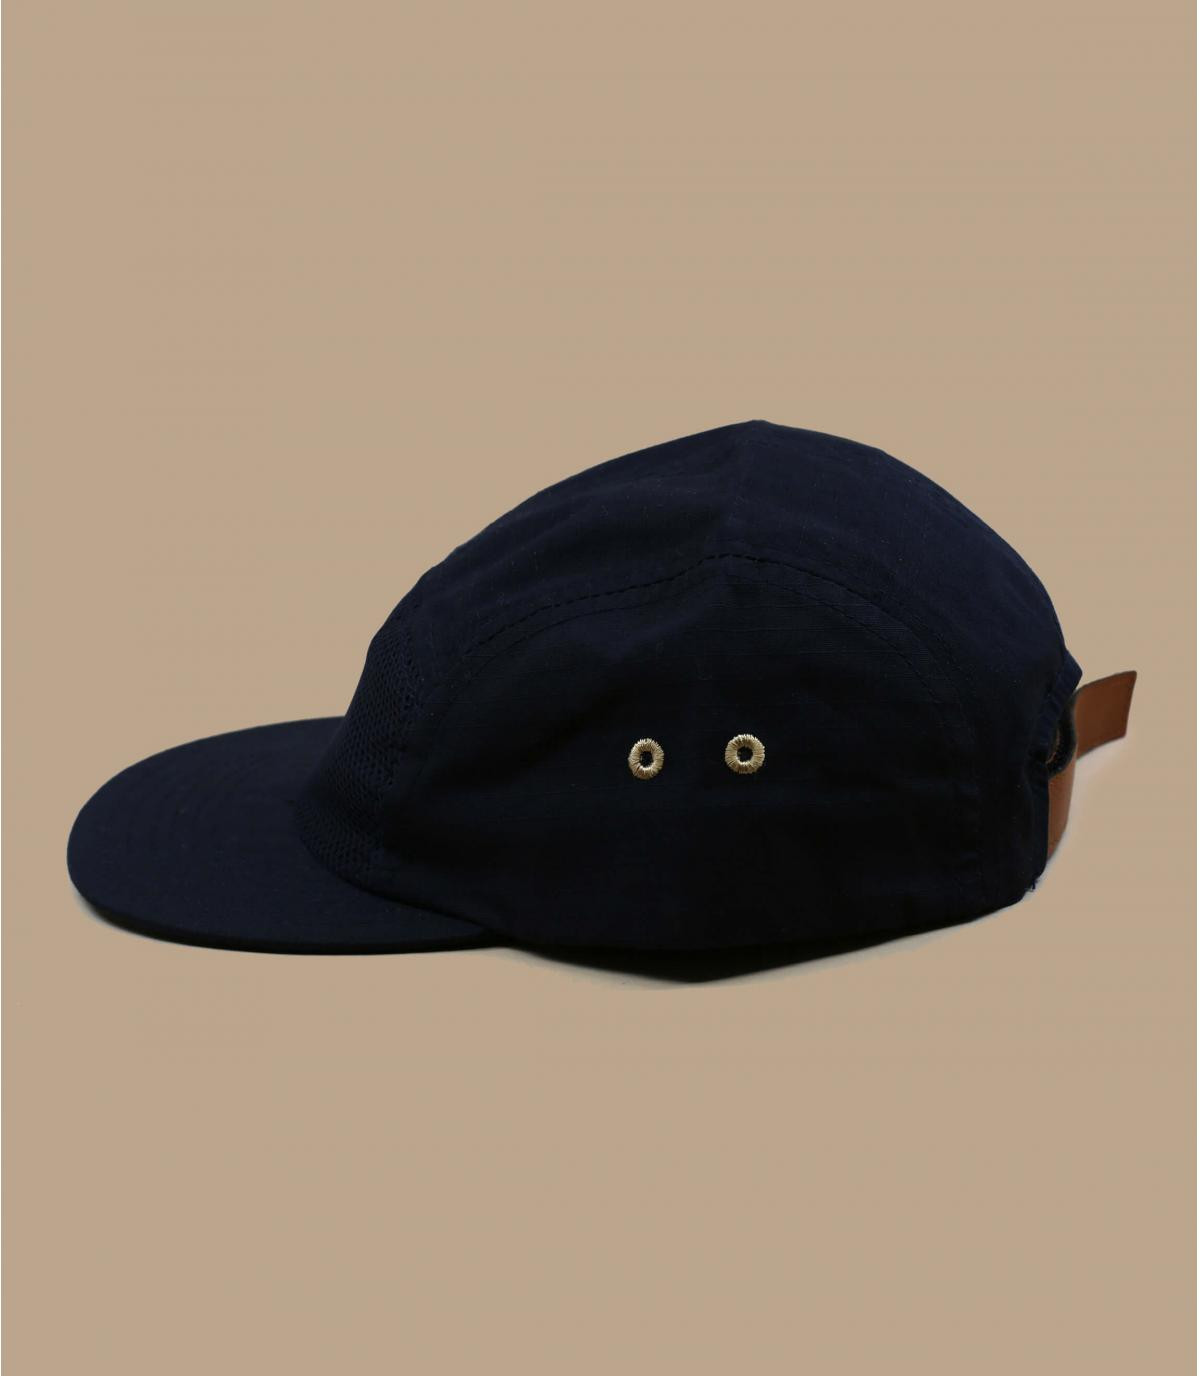 Détails 5 Panels Discovery navy - image 2